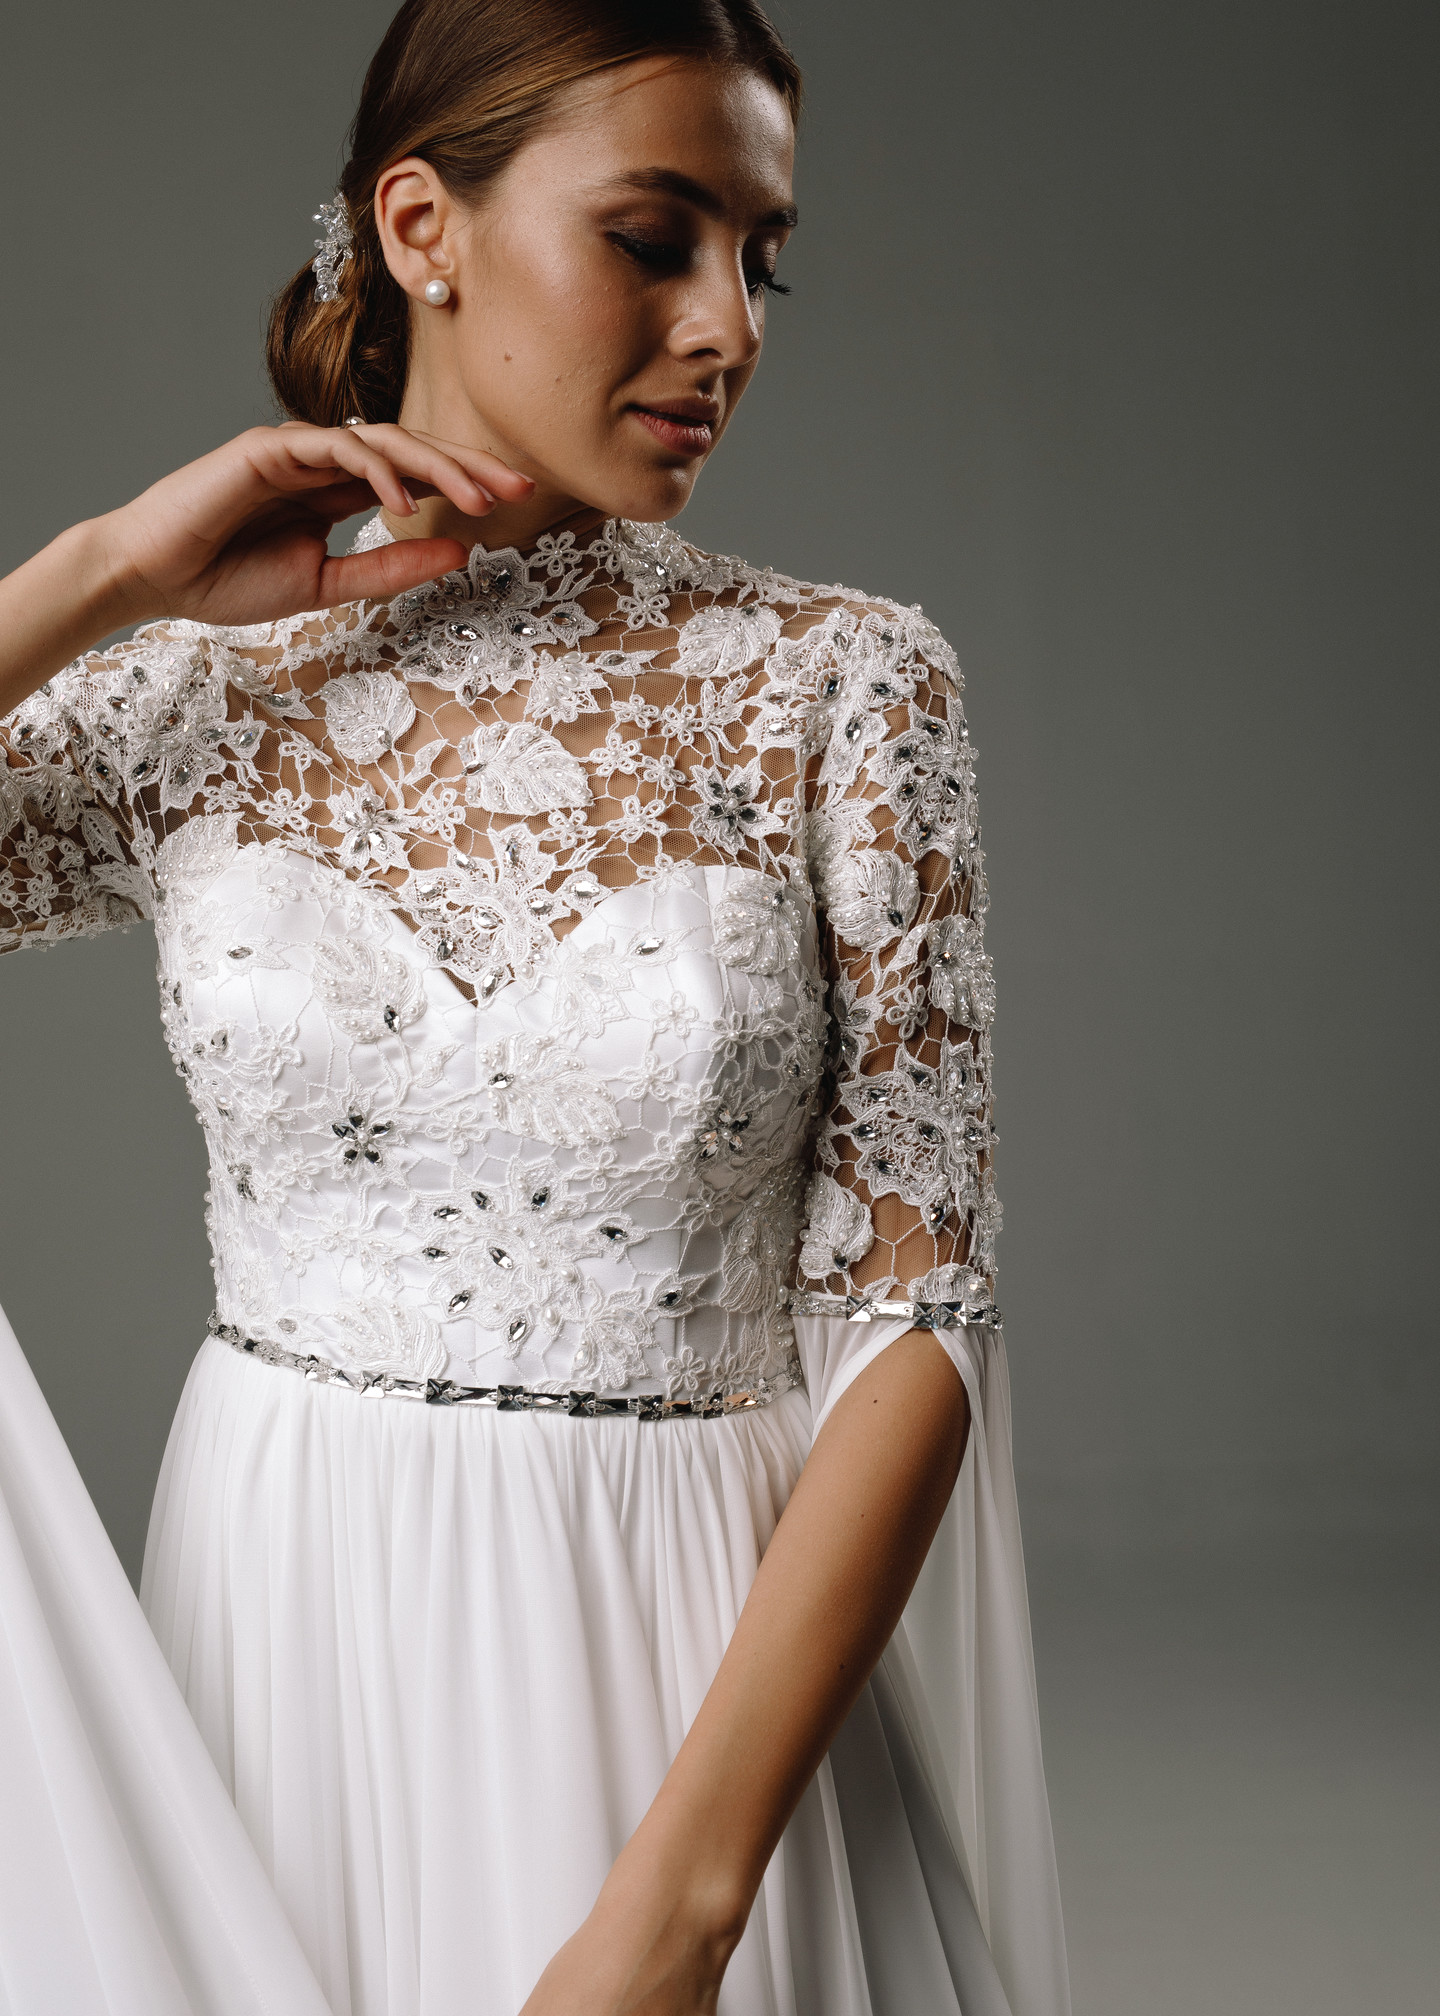 Augustine gown, 2020, couture, gown, dress, bridal, off-white, lace, embroidery, sleeves, A-line, discount, sale